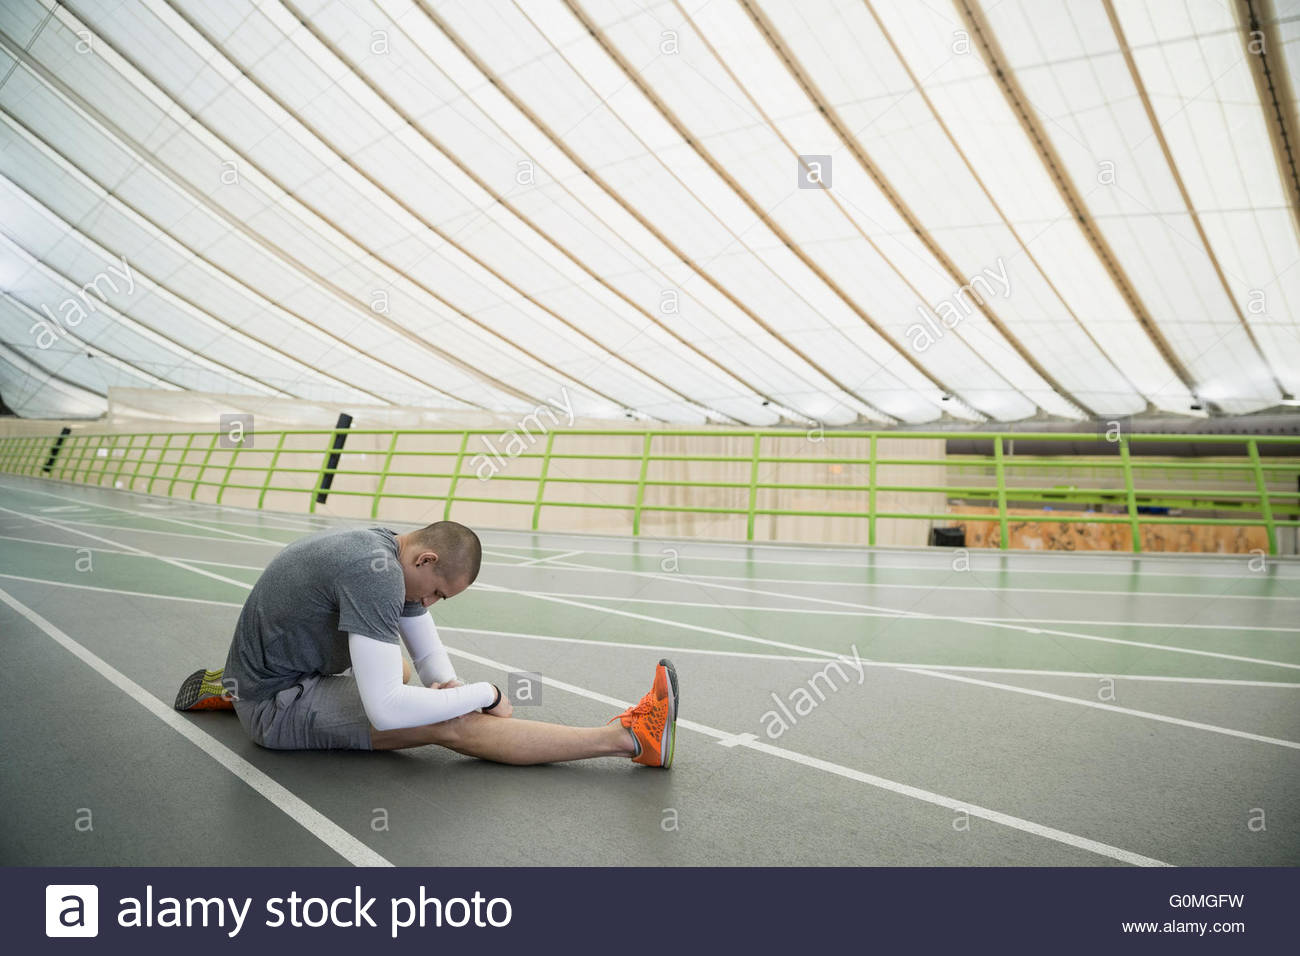 Runner stretching on indoor track - Stock Image